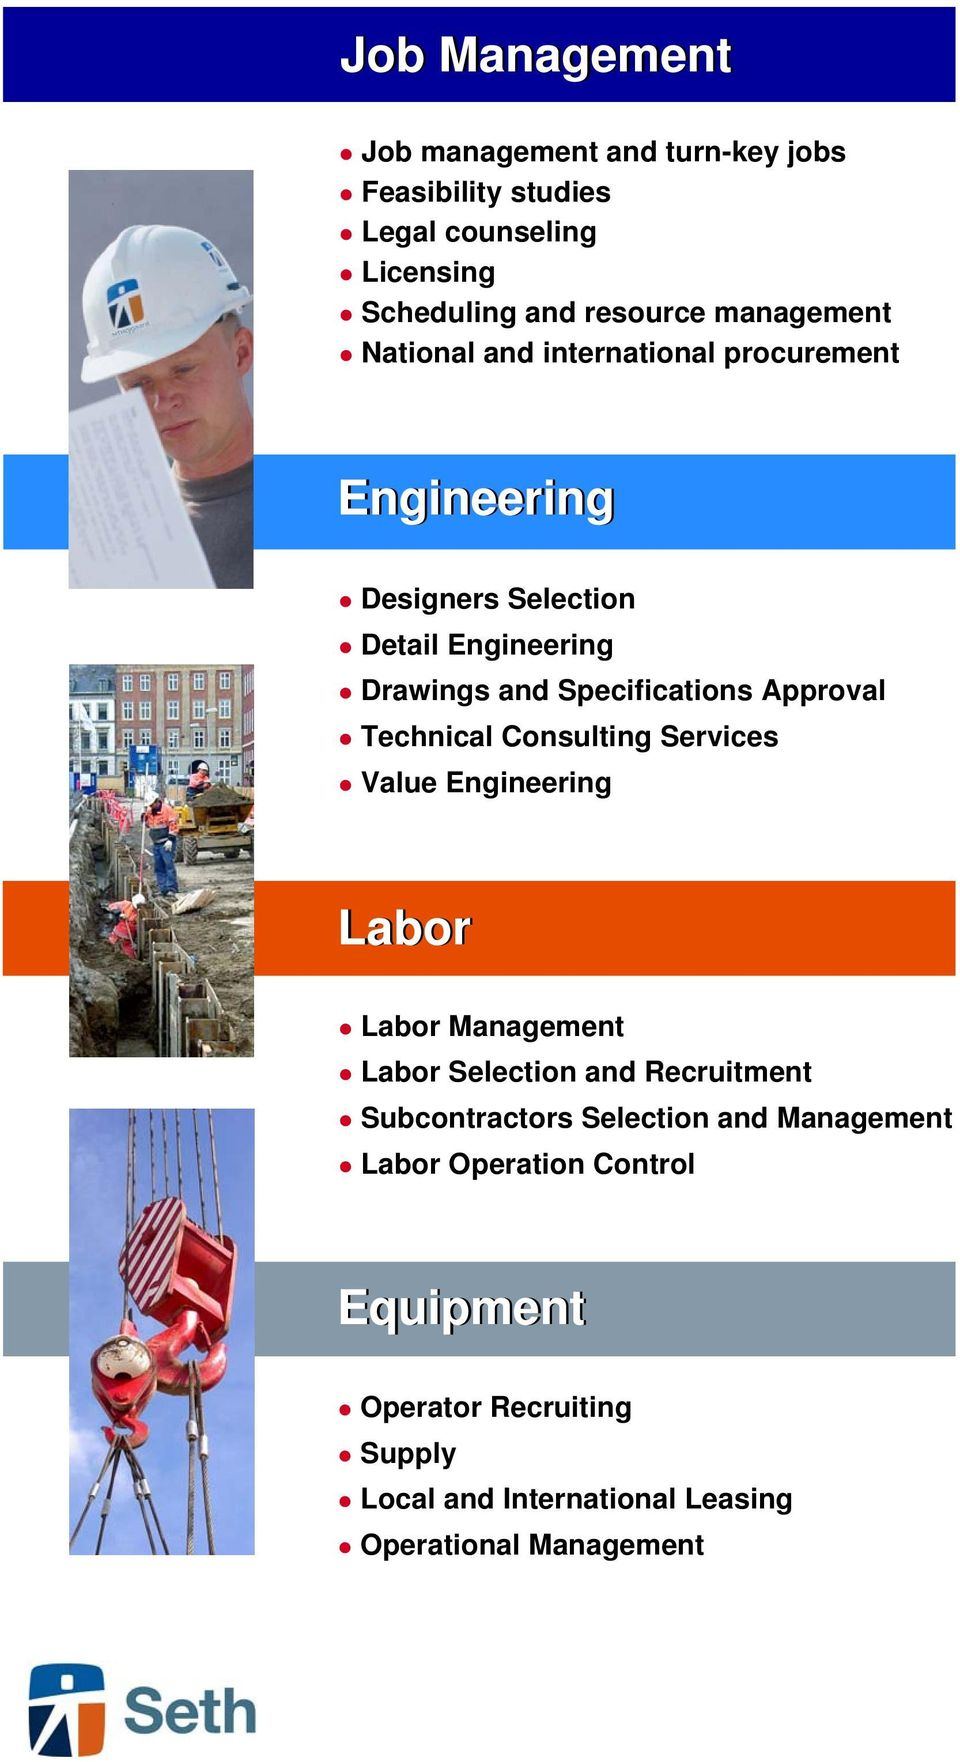 Approval Technical Consulting Services Value Engineering Labor Labor Management Labor Selection and Recruitment Subcontractors